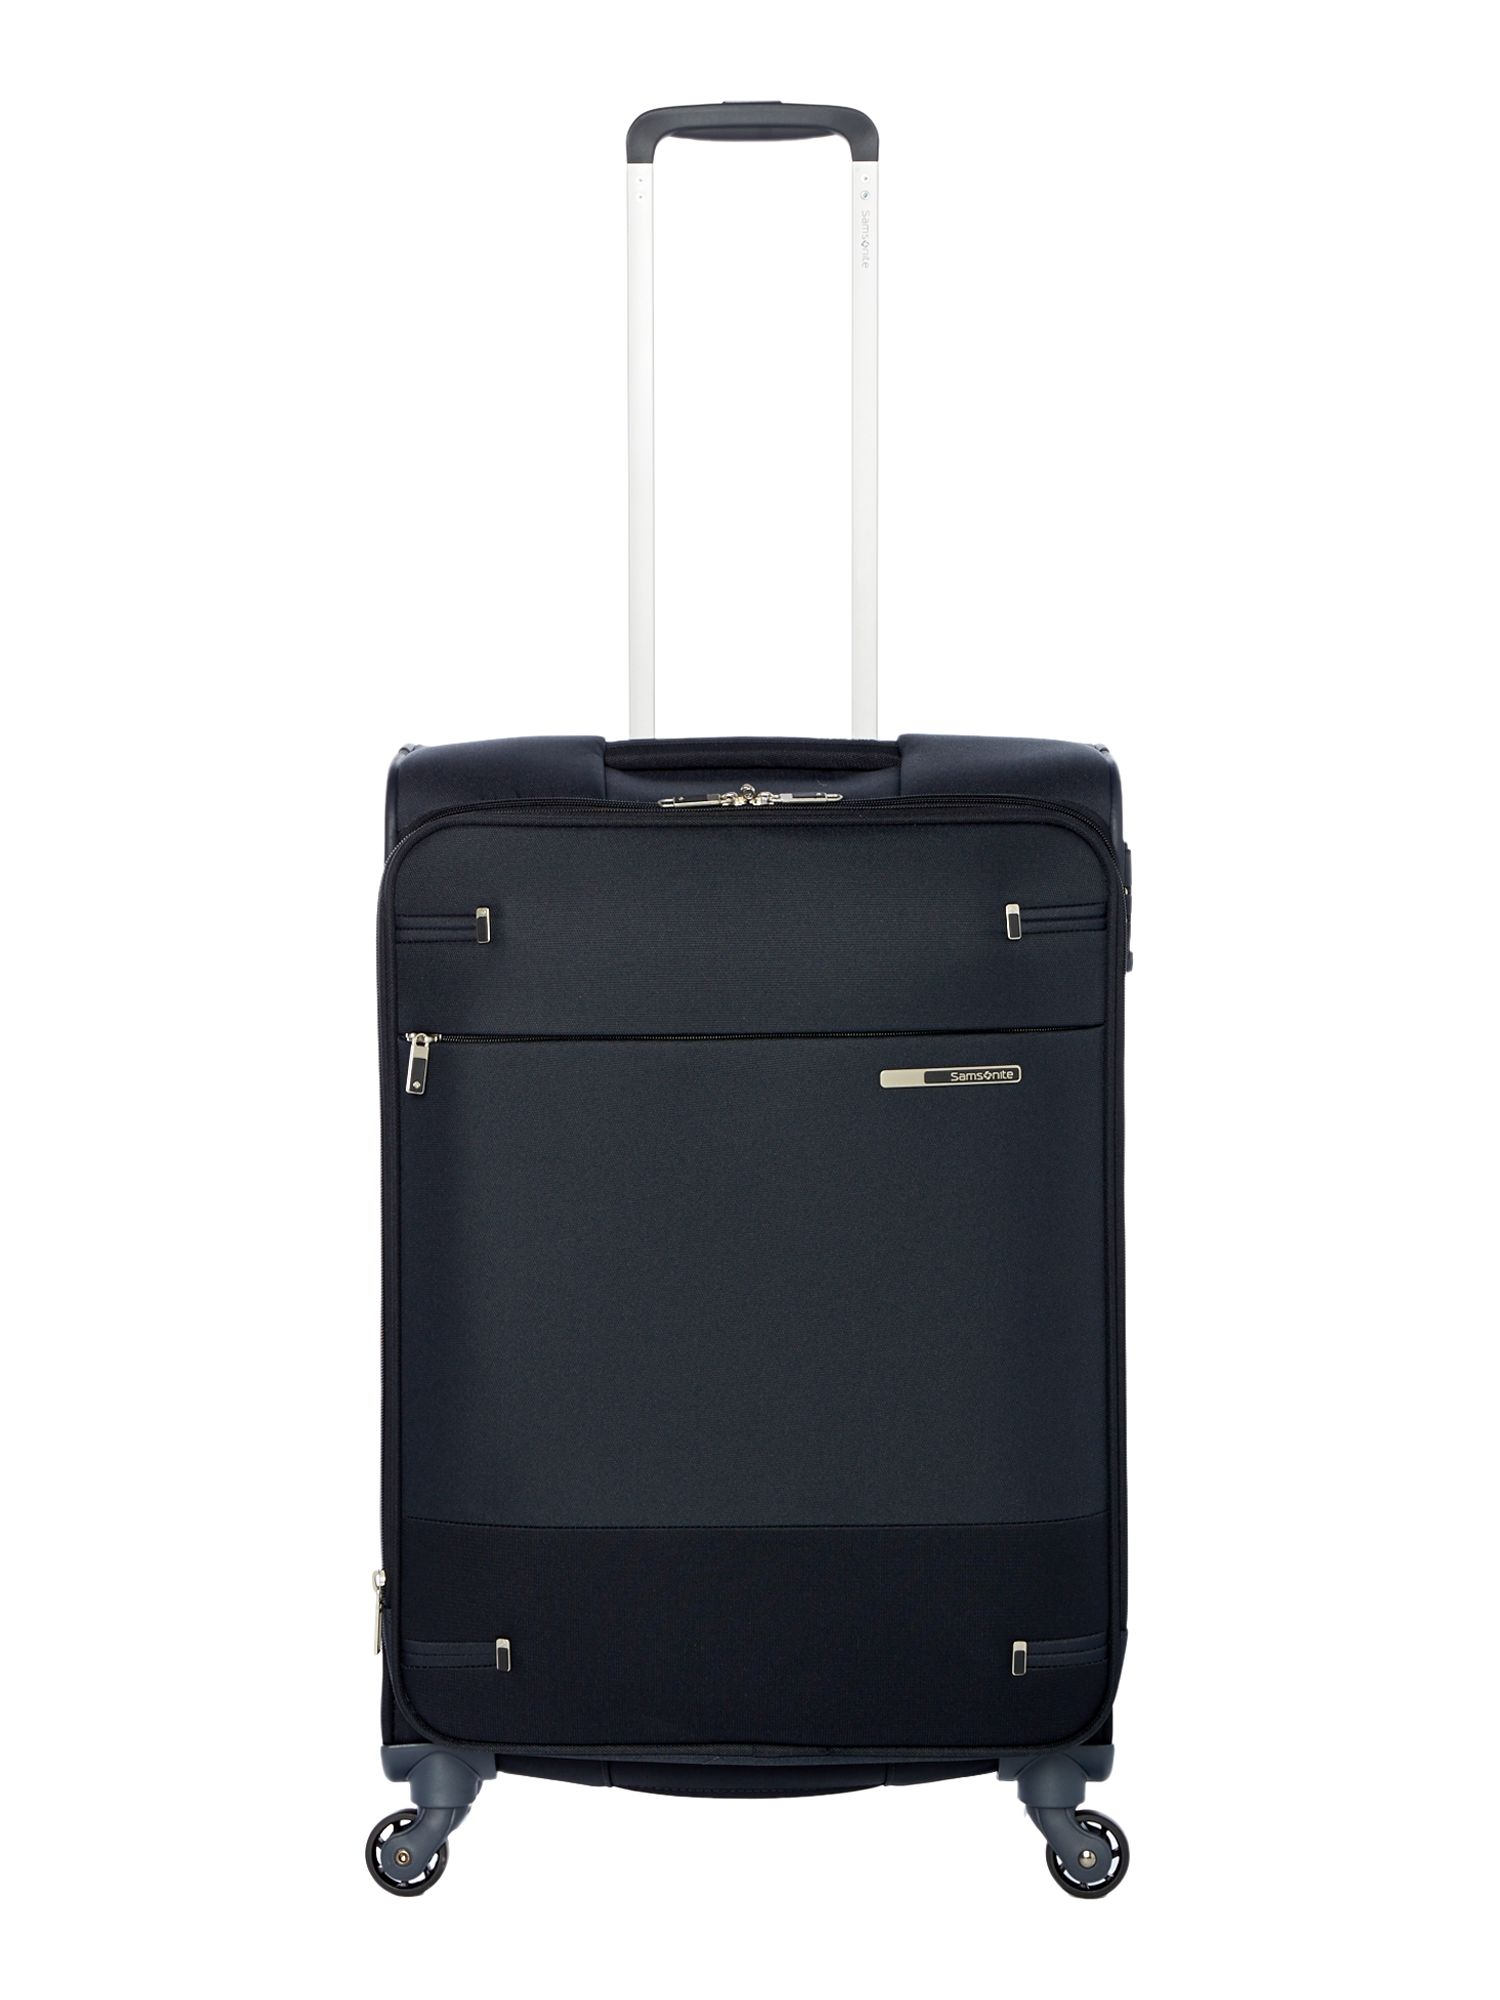 Samsonite Base boost black 4 wheel 66cm medium suitcase, Black